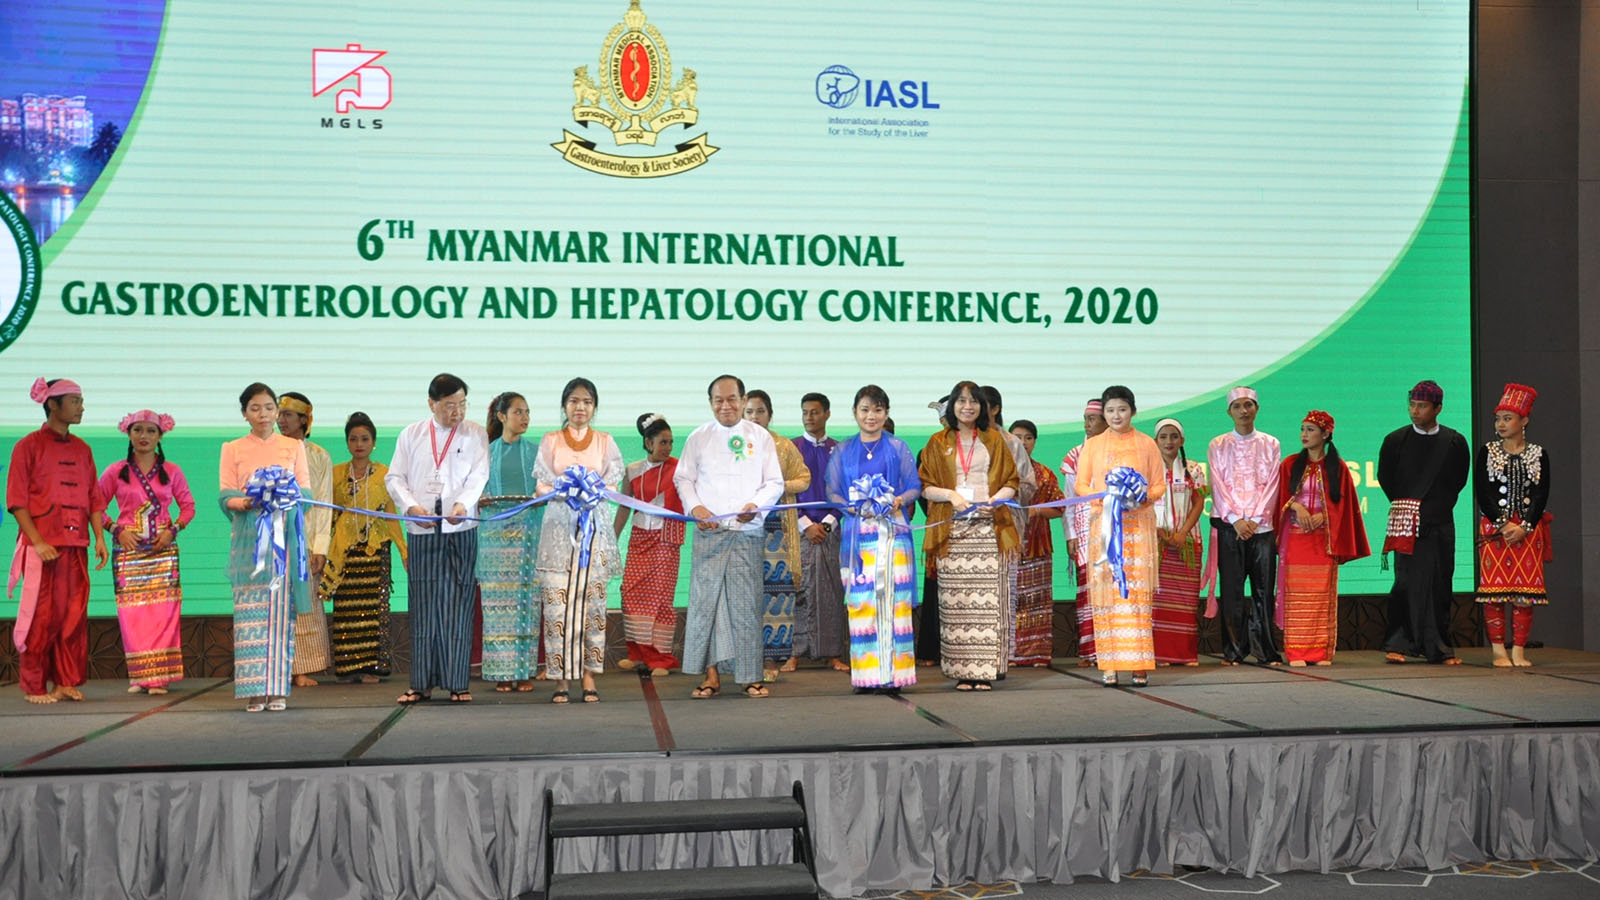 Union Minister Dr Myint Htwe and officials open the 6th Myanmar International Gastroenterology and Hepatology Conference, 2020 in Yangon yesterday. Photo: MNA